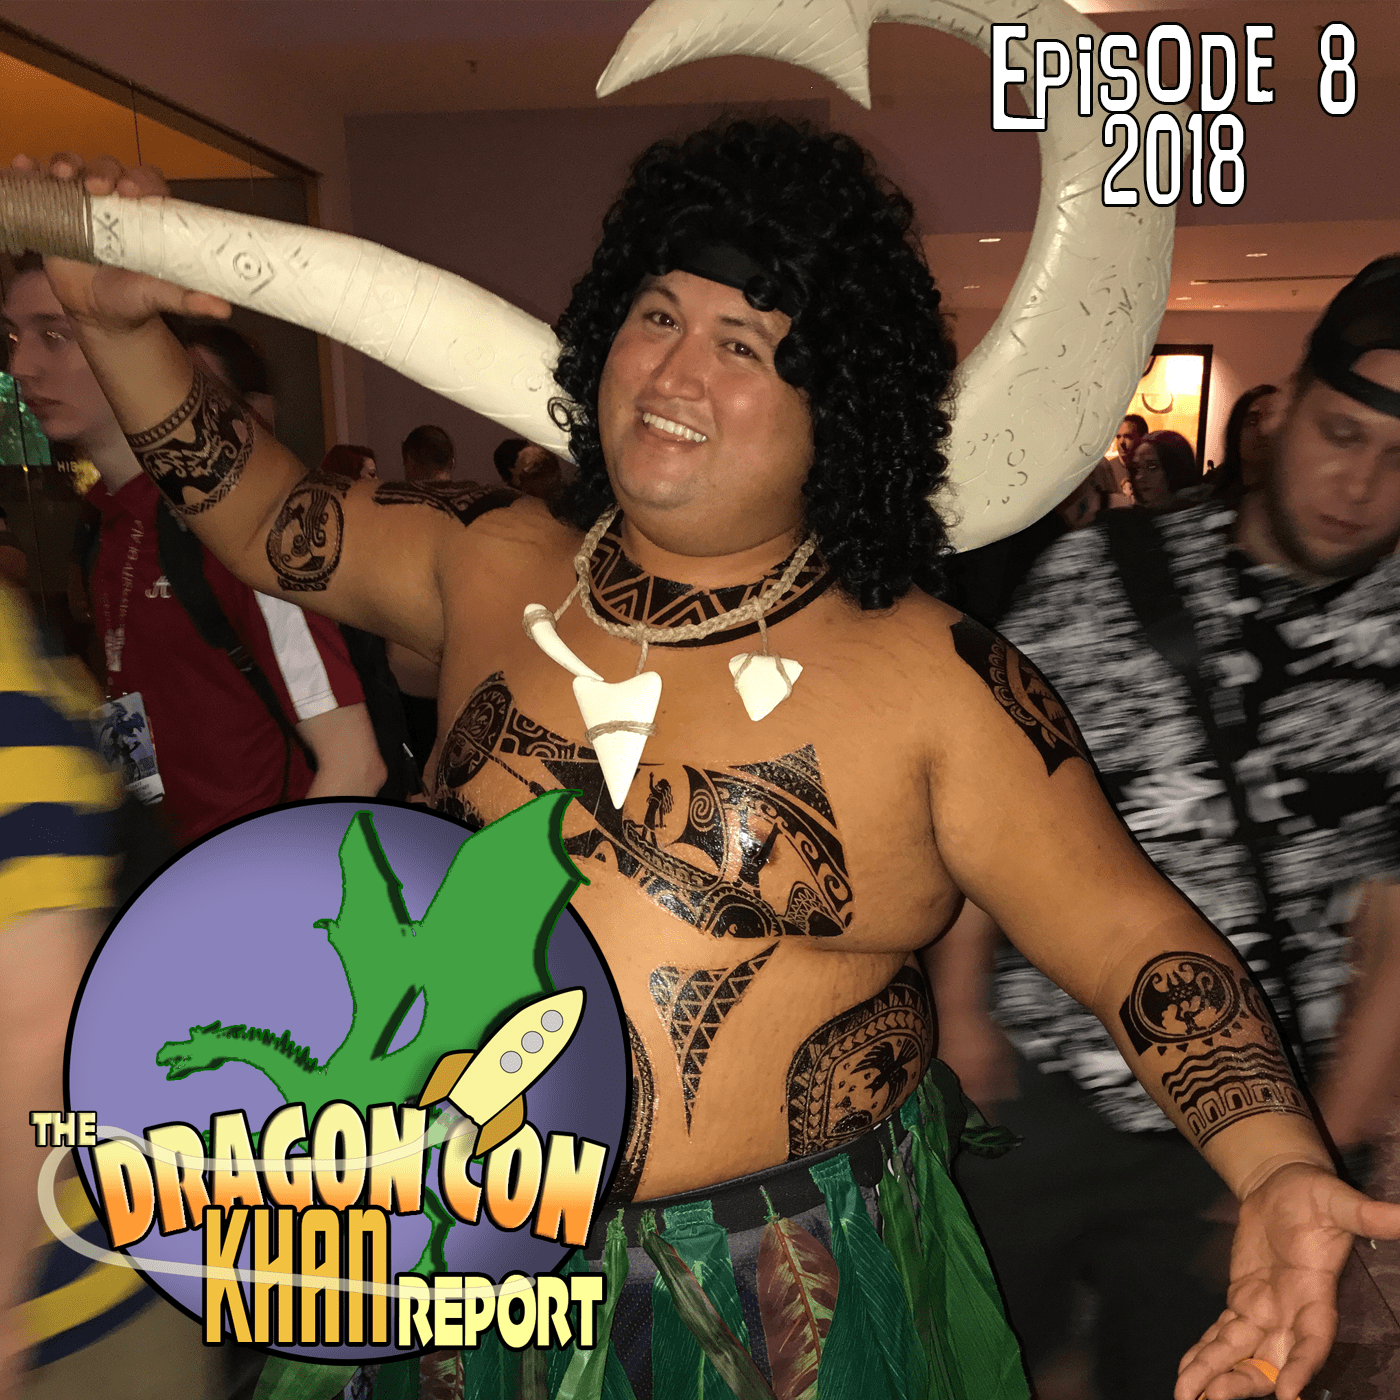 The 2018 Dragon Con Khan Report Ep 8